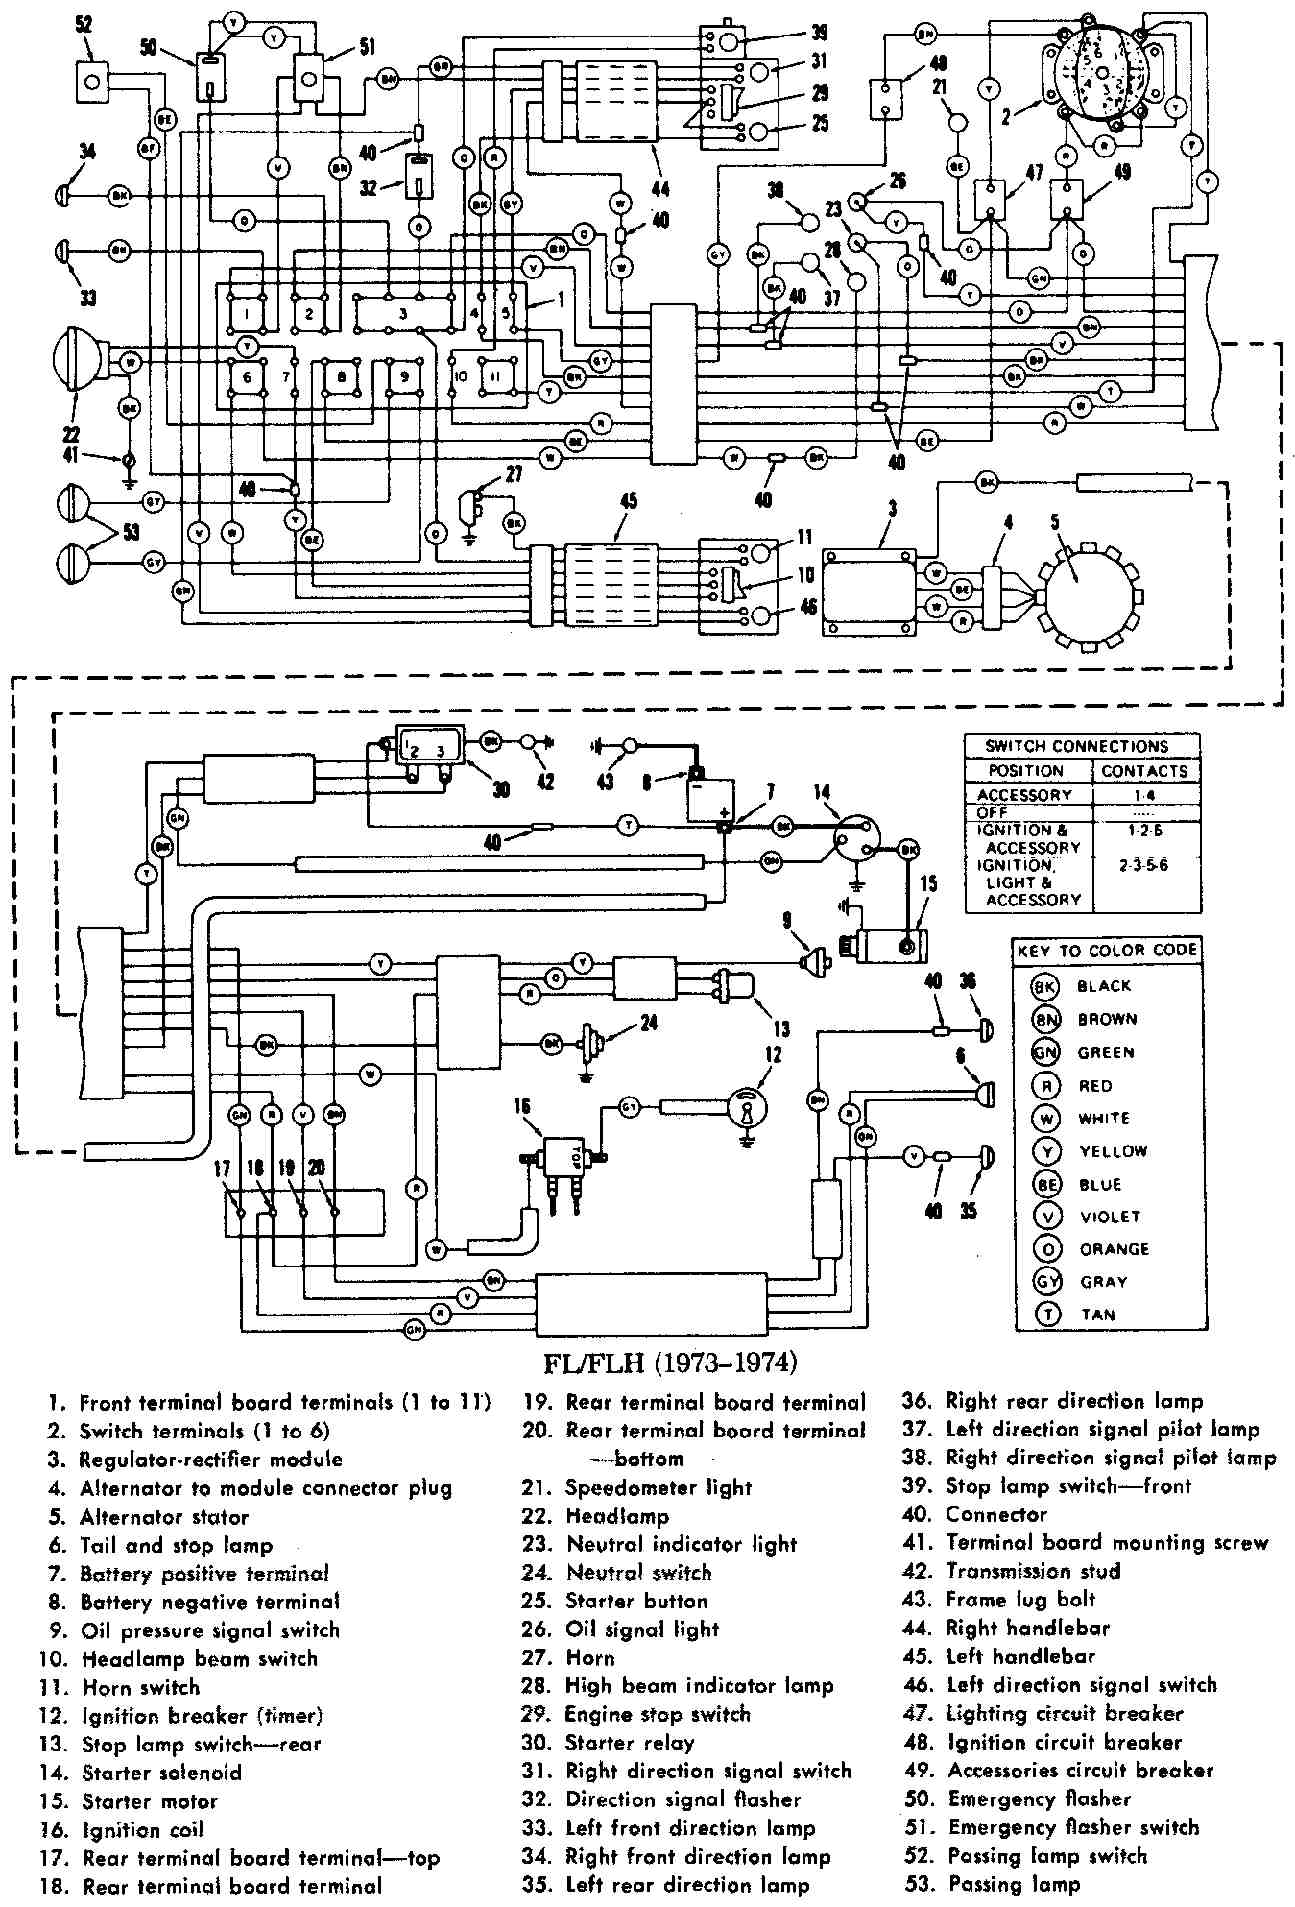 related with for generator harley diagram wiring voltpak